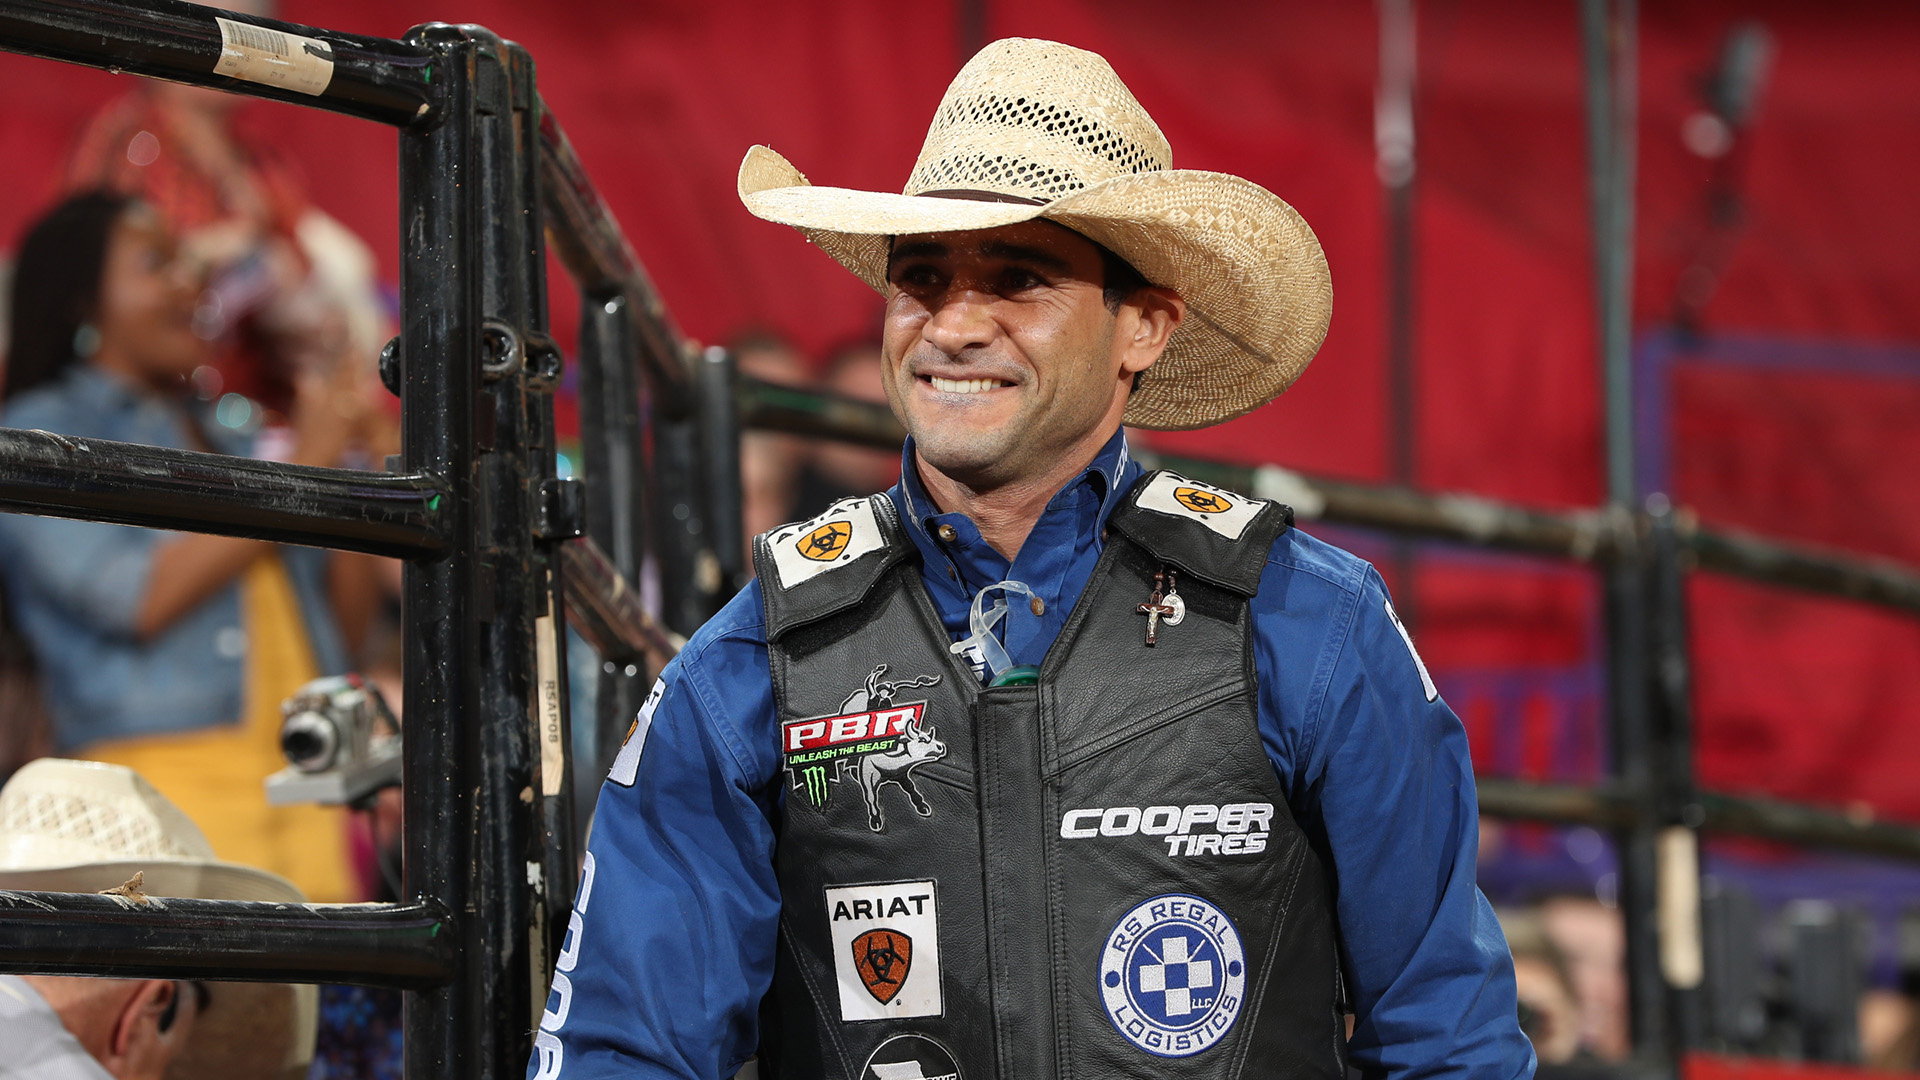 Vieira moves to No. 2 in world standings, turns his focus to Last Cowboy Standing